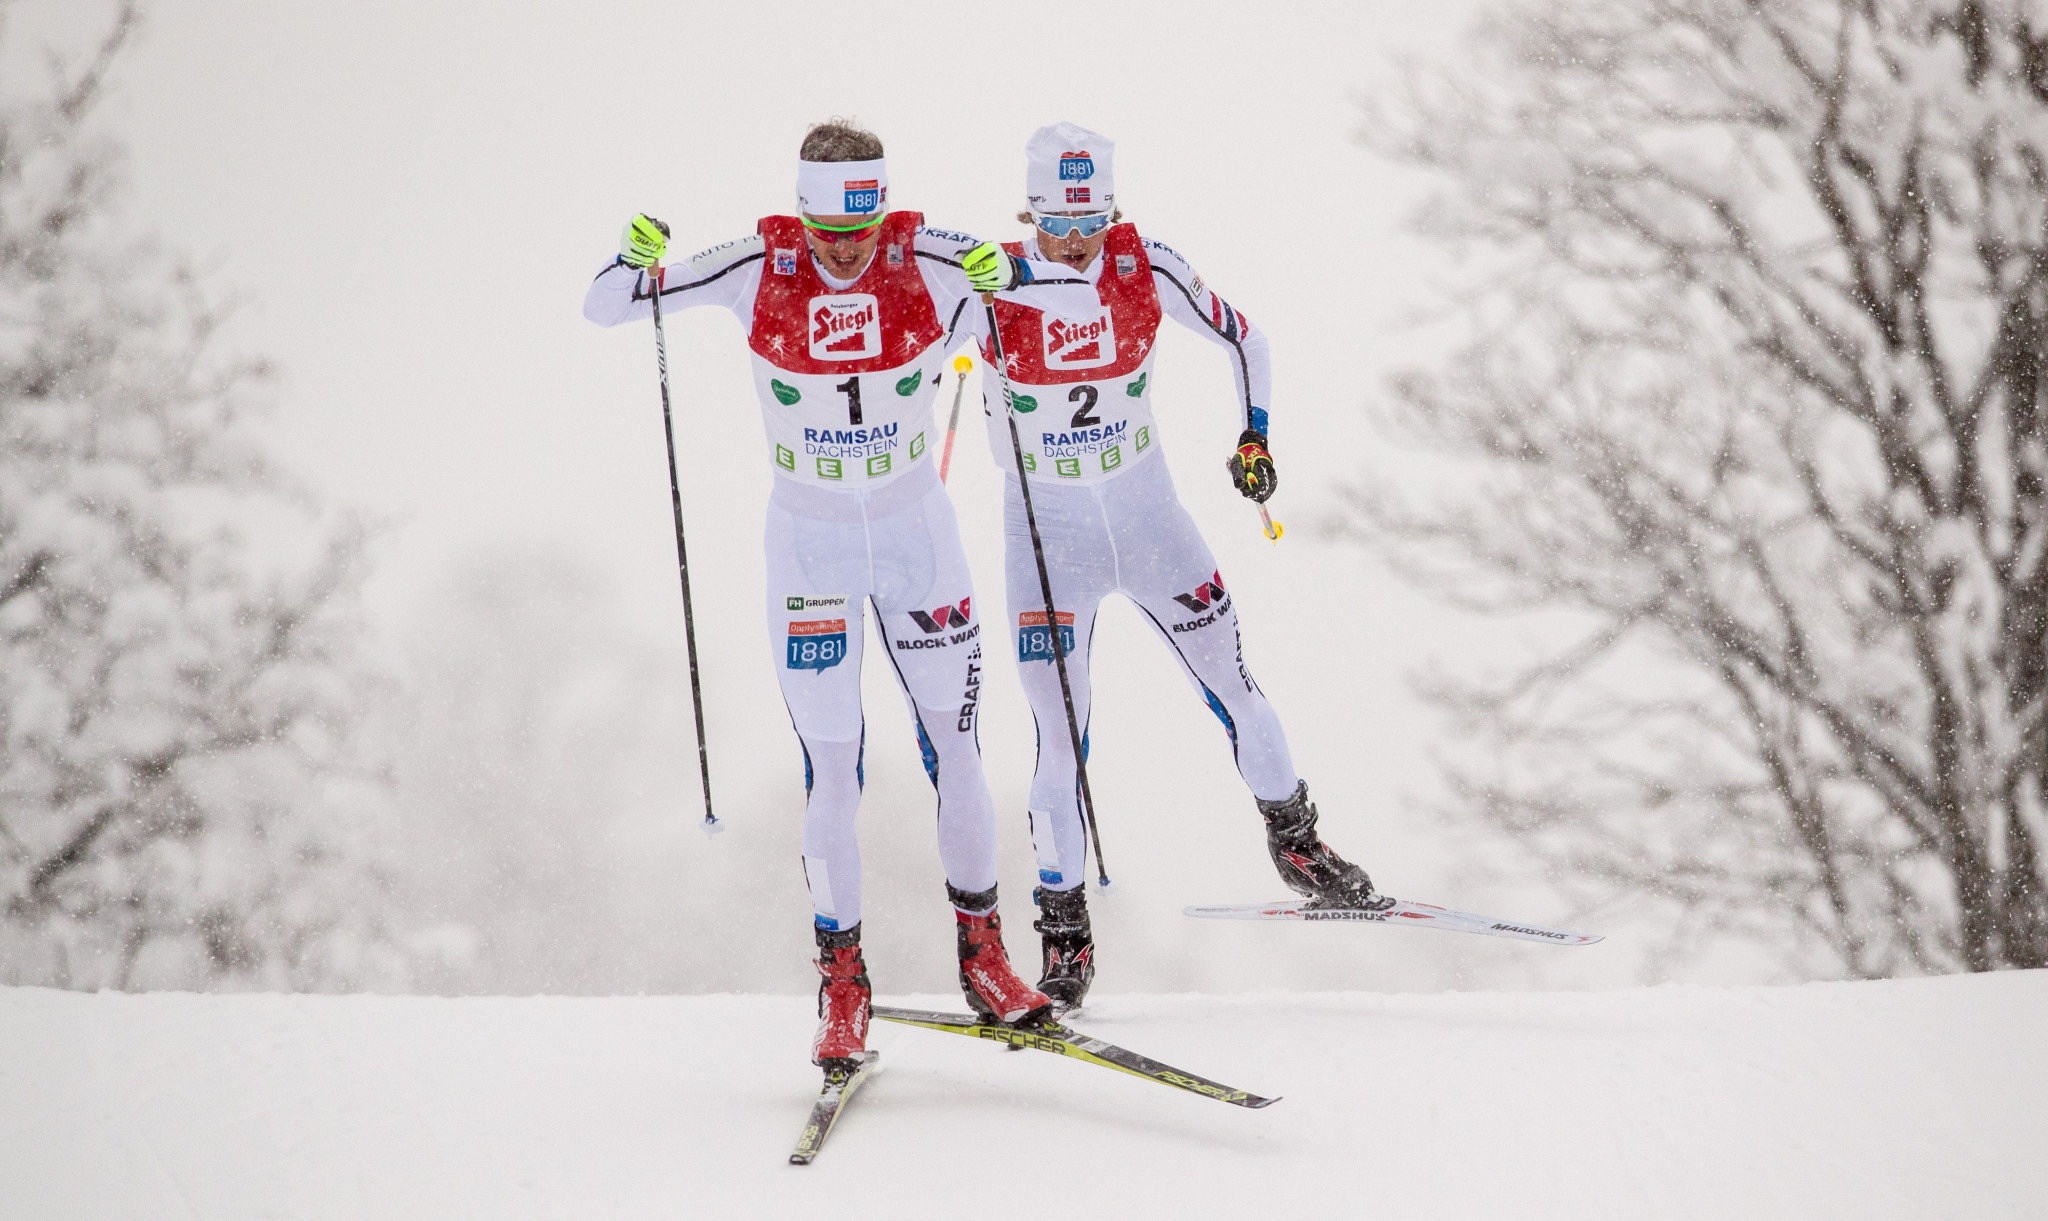 Graabak secures first victory of season at FIS Nordic Combined World Cup in Italy